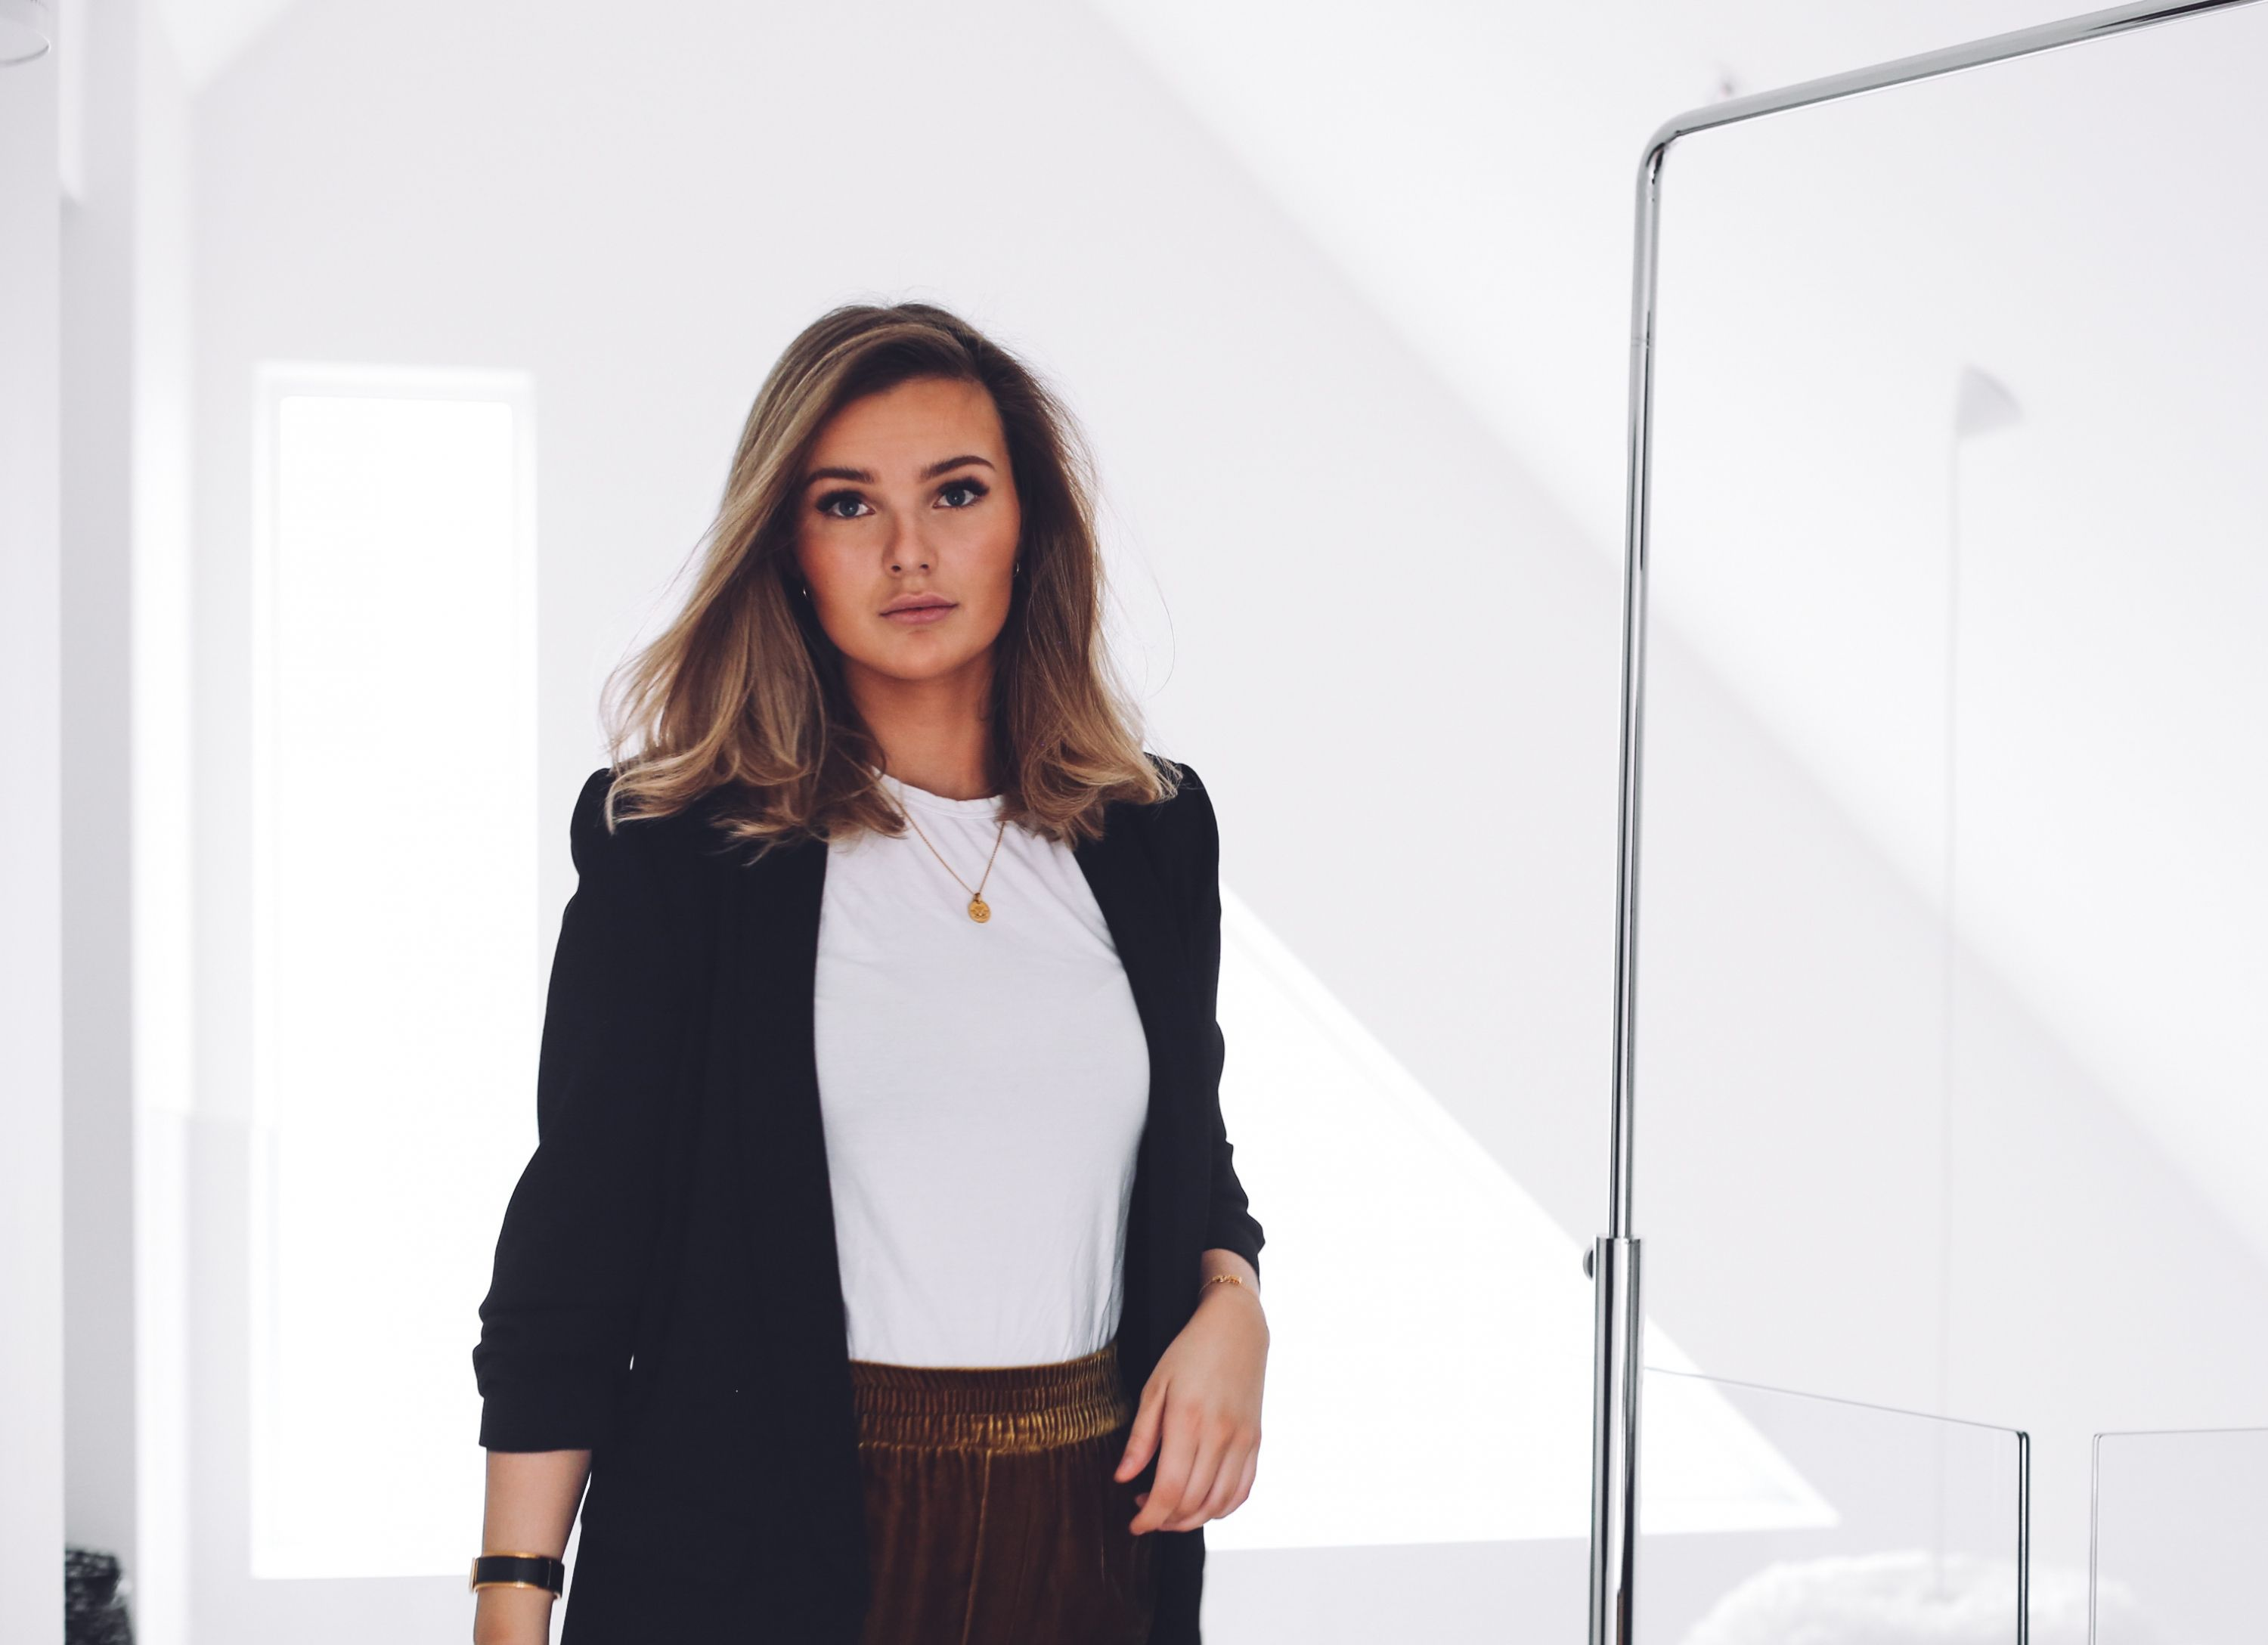 The perfect Friday outfit – Eirin Kristiansen